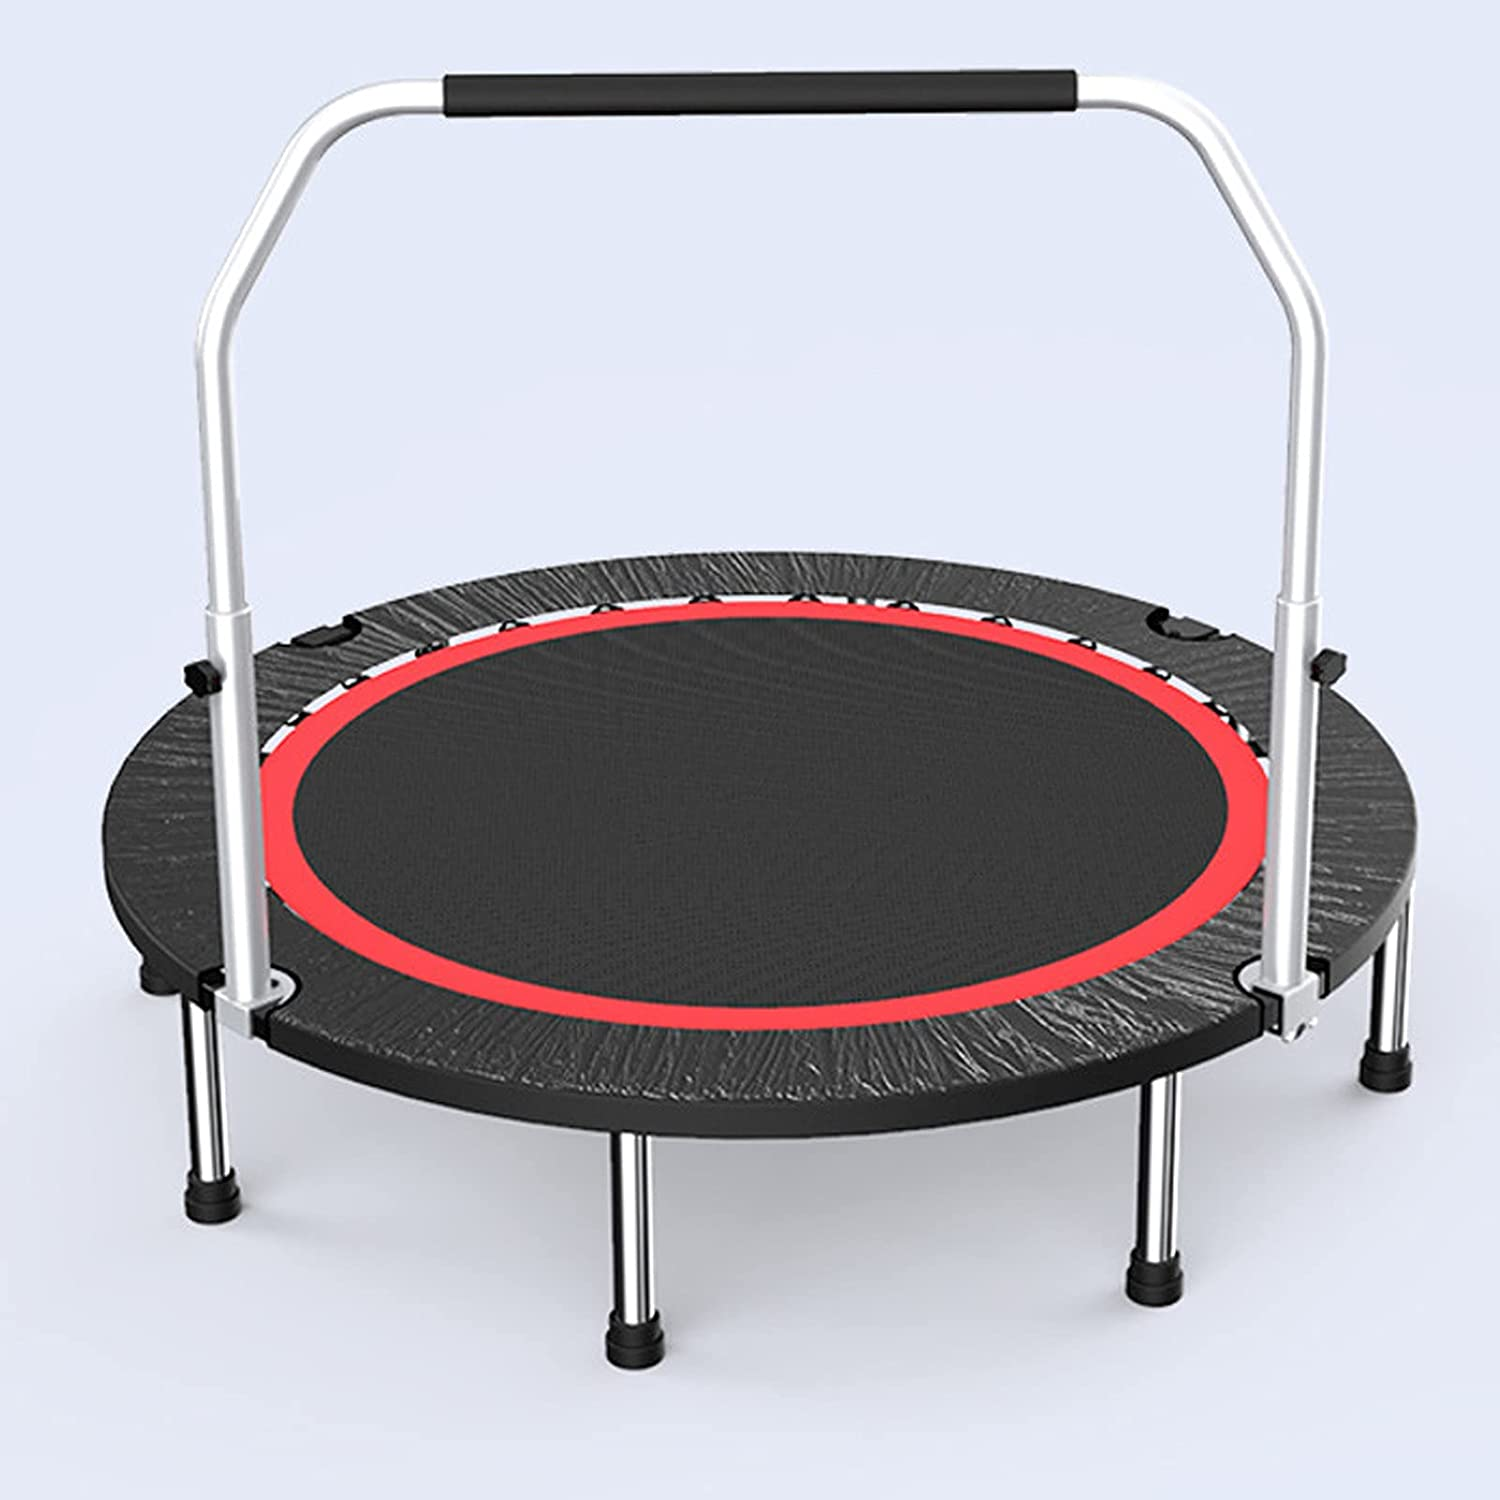 Foldable Fitness Trampolines Rebound Recreational Tram Import Max 86% OFF Exercise